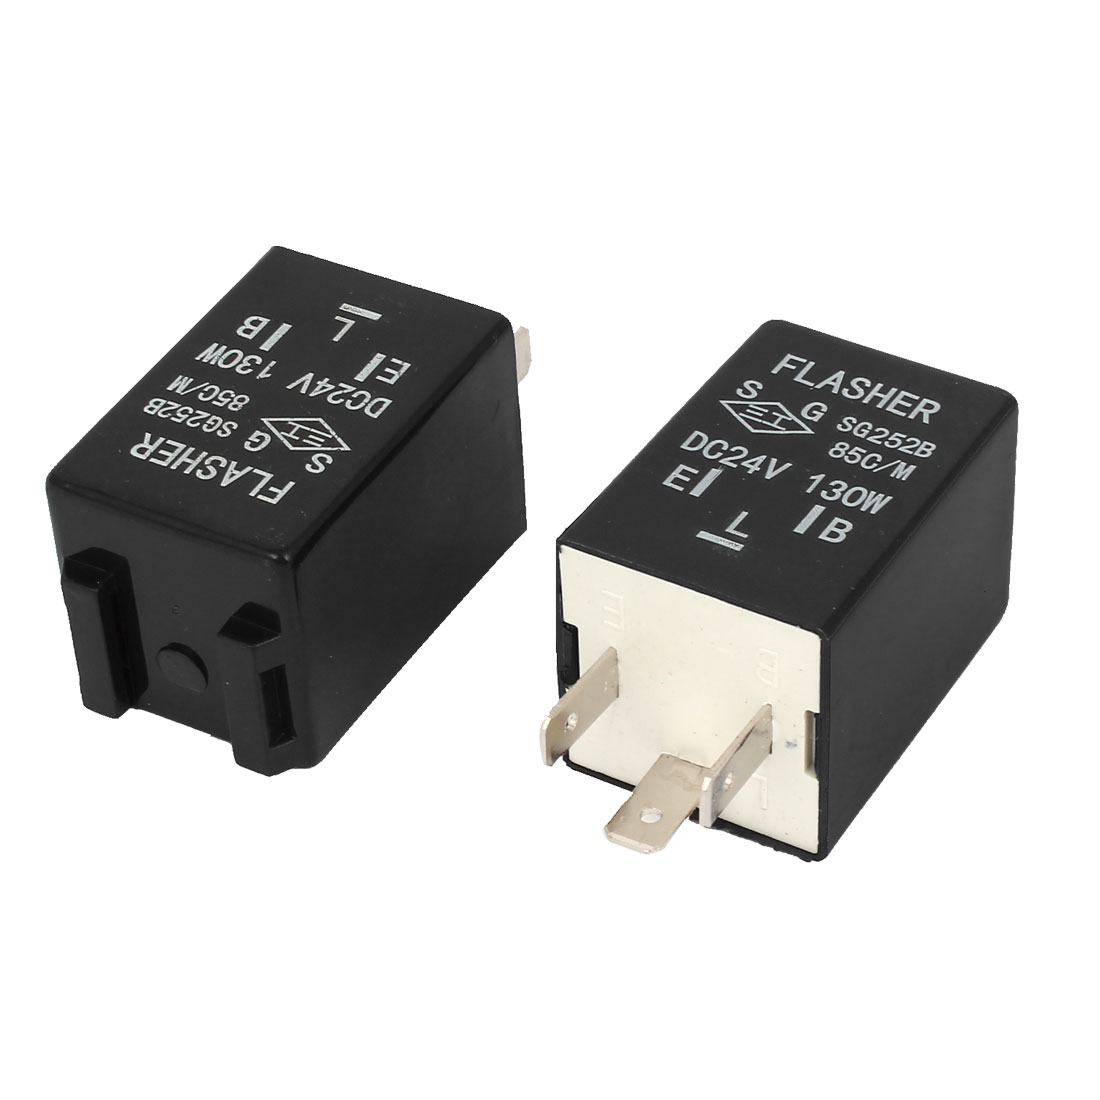 2 Pcs 130W DC 24V Relay Unit Electronic Flasher for Car Auto